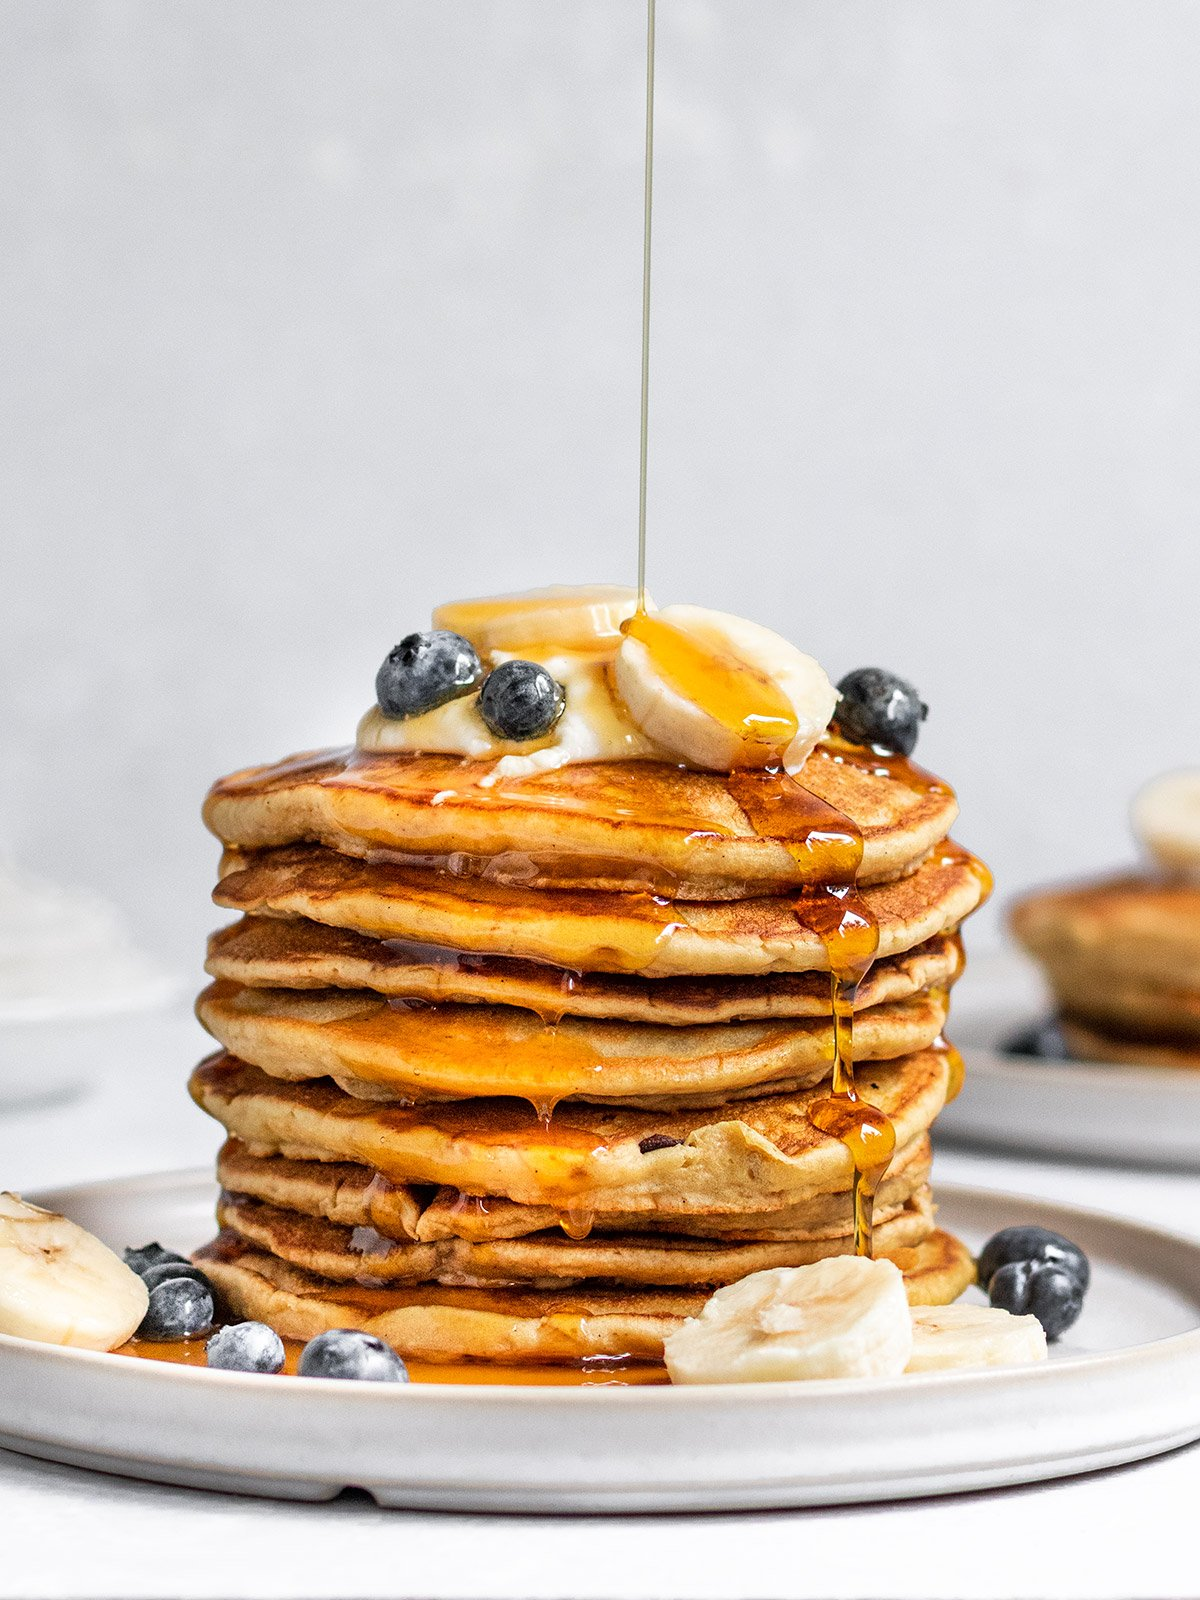 a stack of pancakes with bananas and blueberries getting drizzled with maple syrup